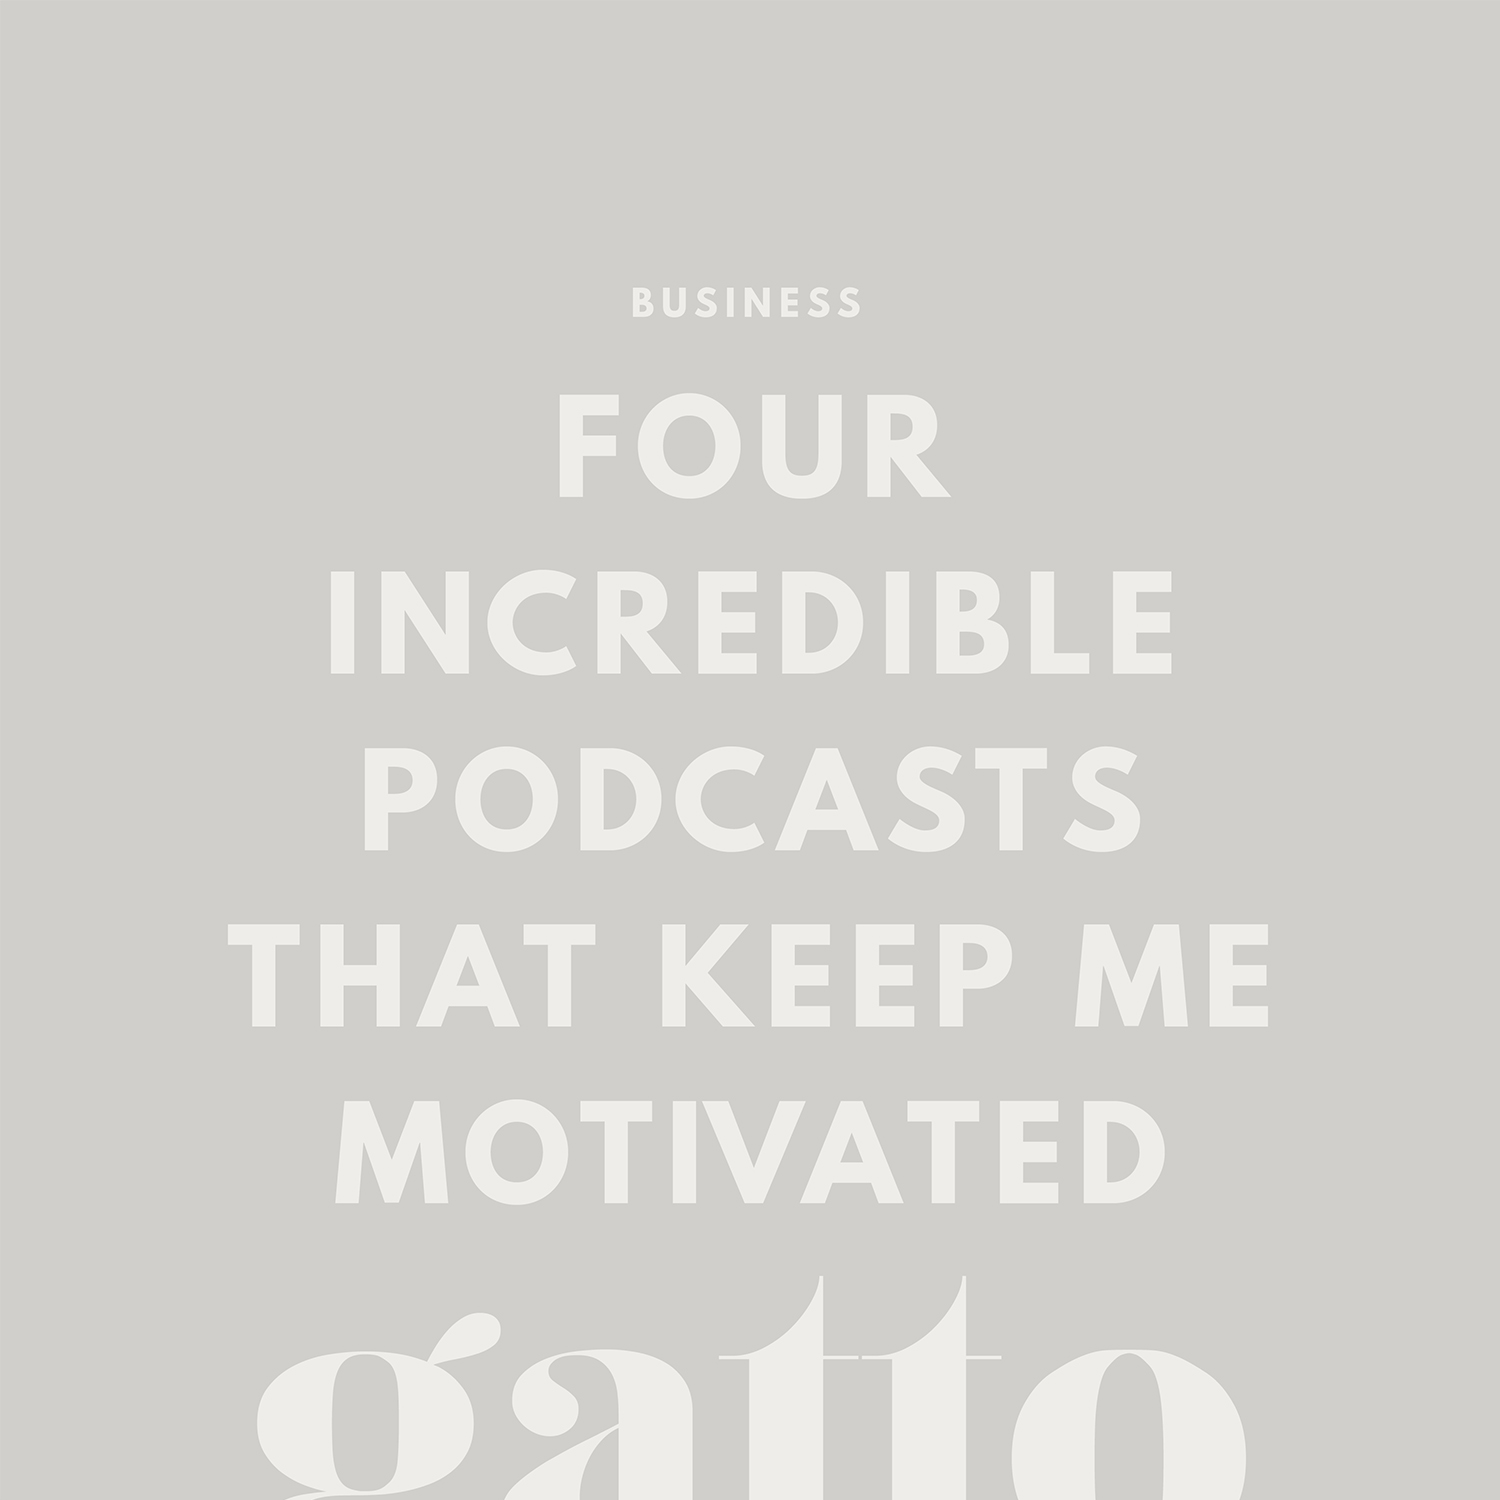 Inspirational Podcasts | Business Advice | Creative Biz | Girl Boss Podcast